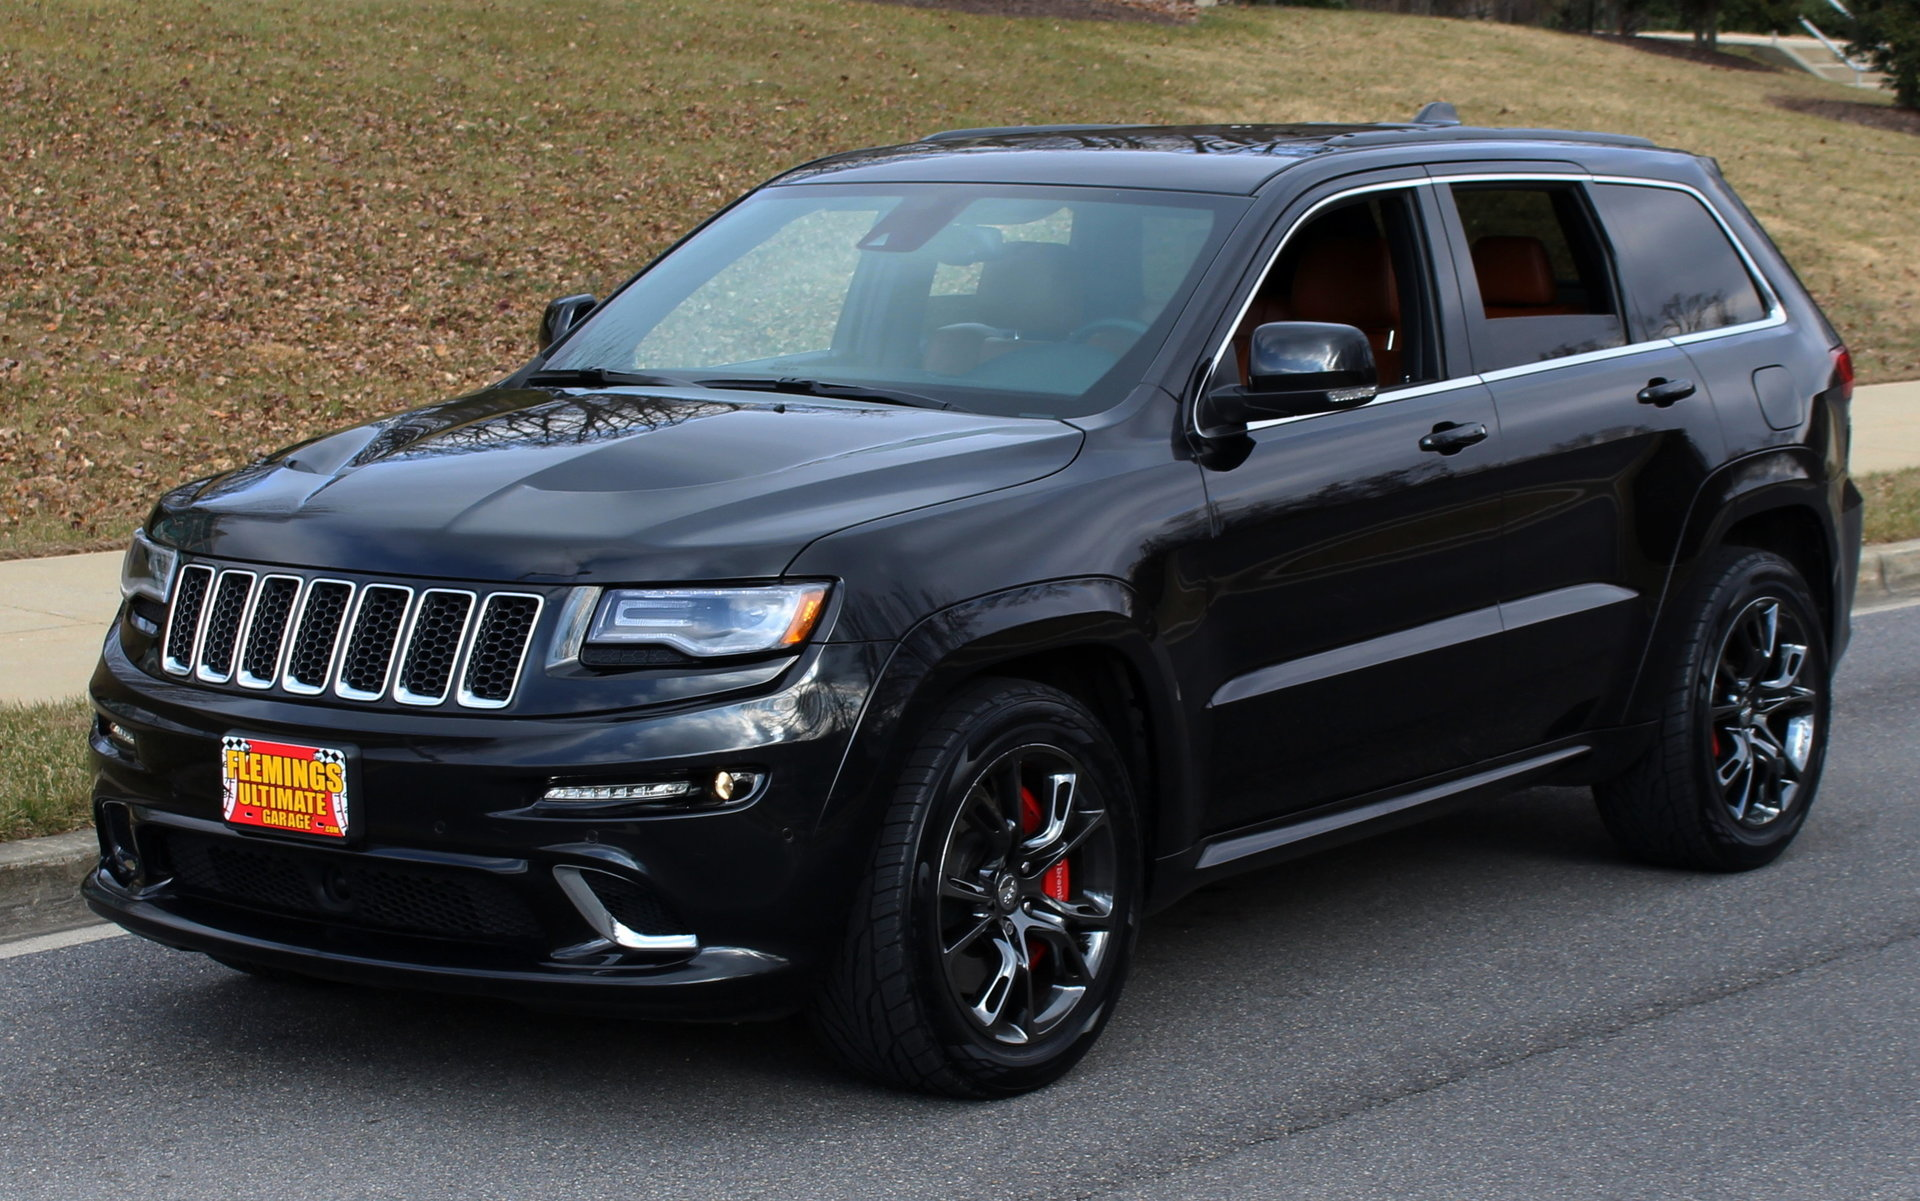 2014 jeep grand cherokee srt 8 2014 jeep grand cherokee srt8 for sale srt hemi 8 speed. Black Bedroom Furniture Sets. Home Design Ideas